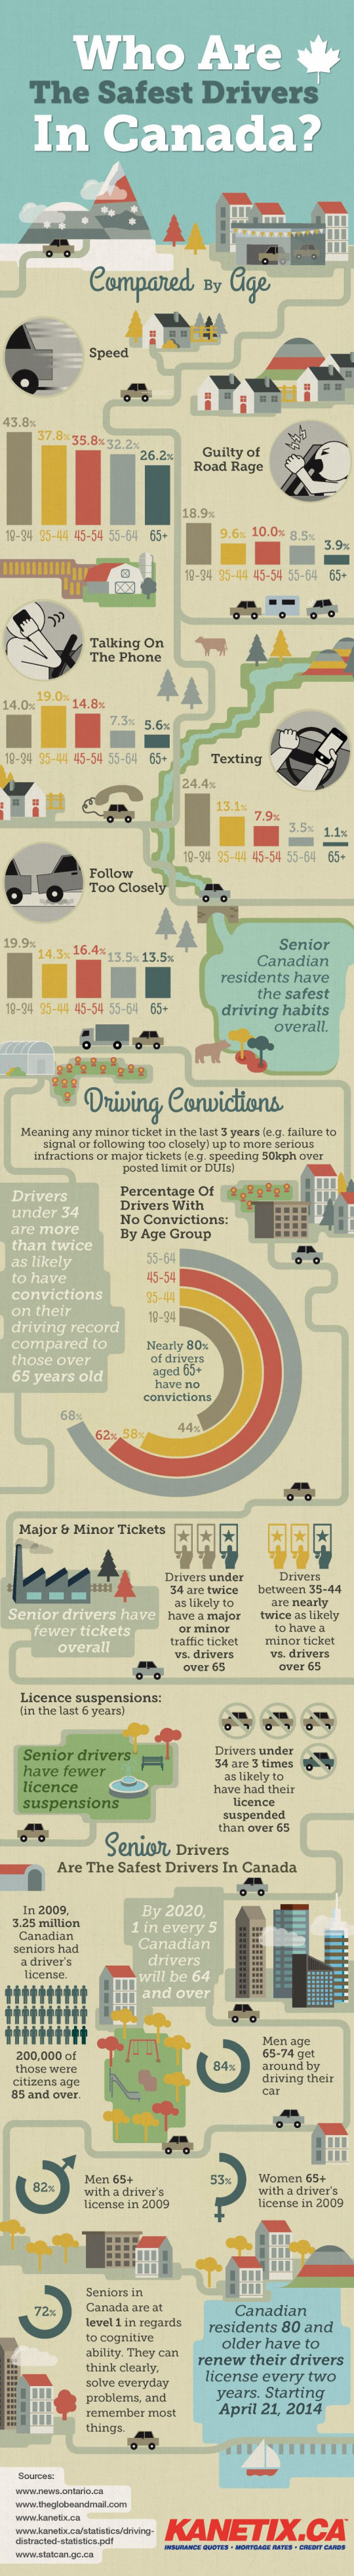 Who Are The Safest Drivers In Canada?